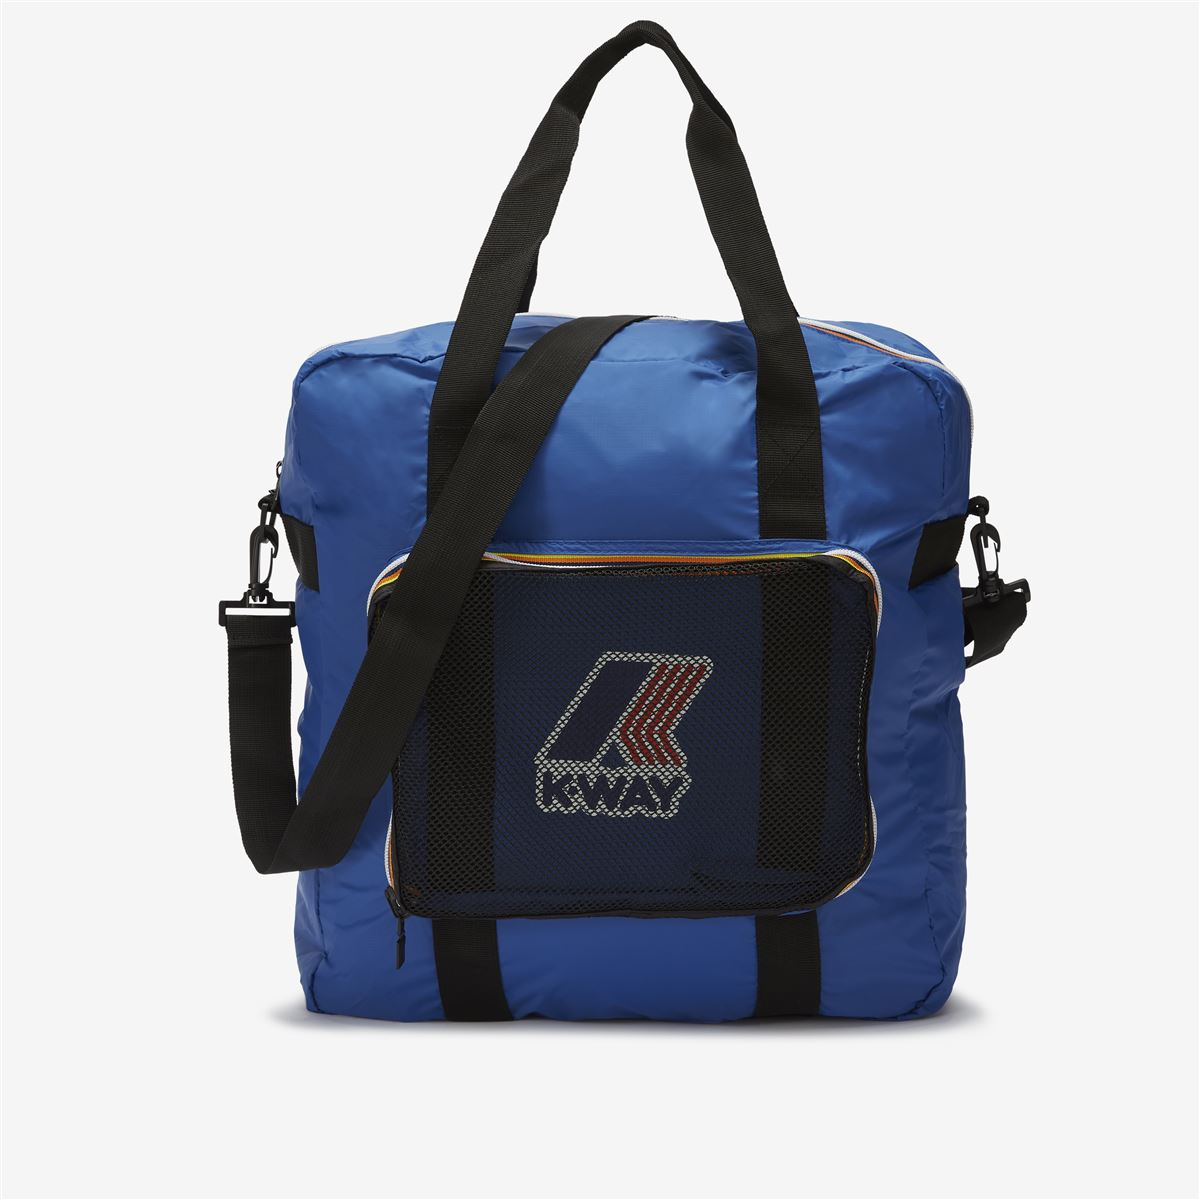 K-Way Bag LE VRAI 3.0 VIOLETTE Shopping Bag Man Woman